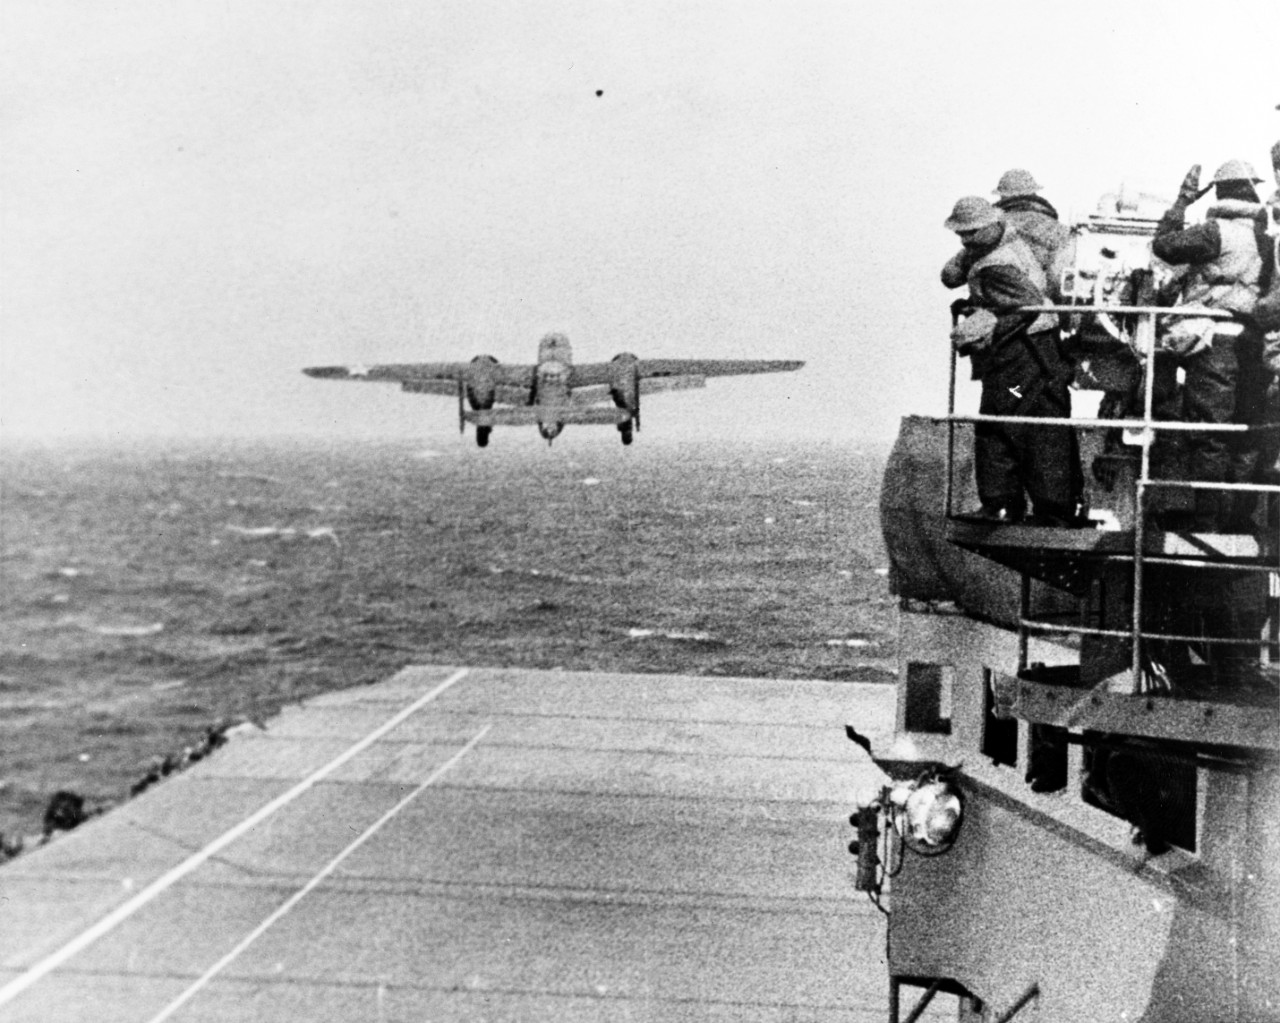 Doolittle Raid on Japan, April 1942